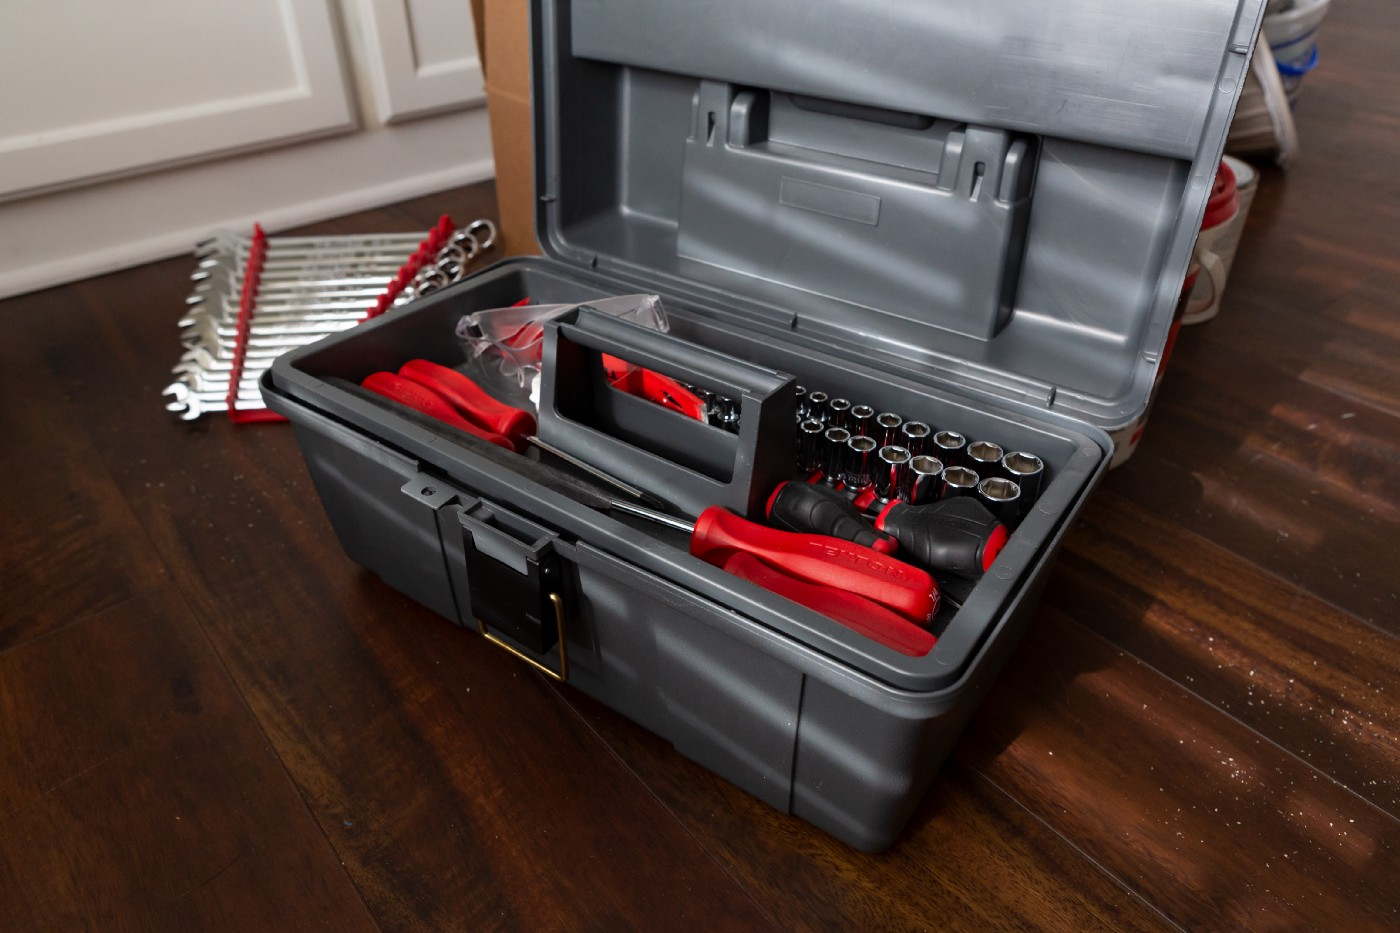 A neatly organized tool box on a dark wood floor.